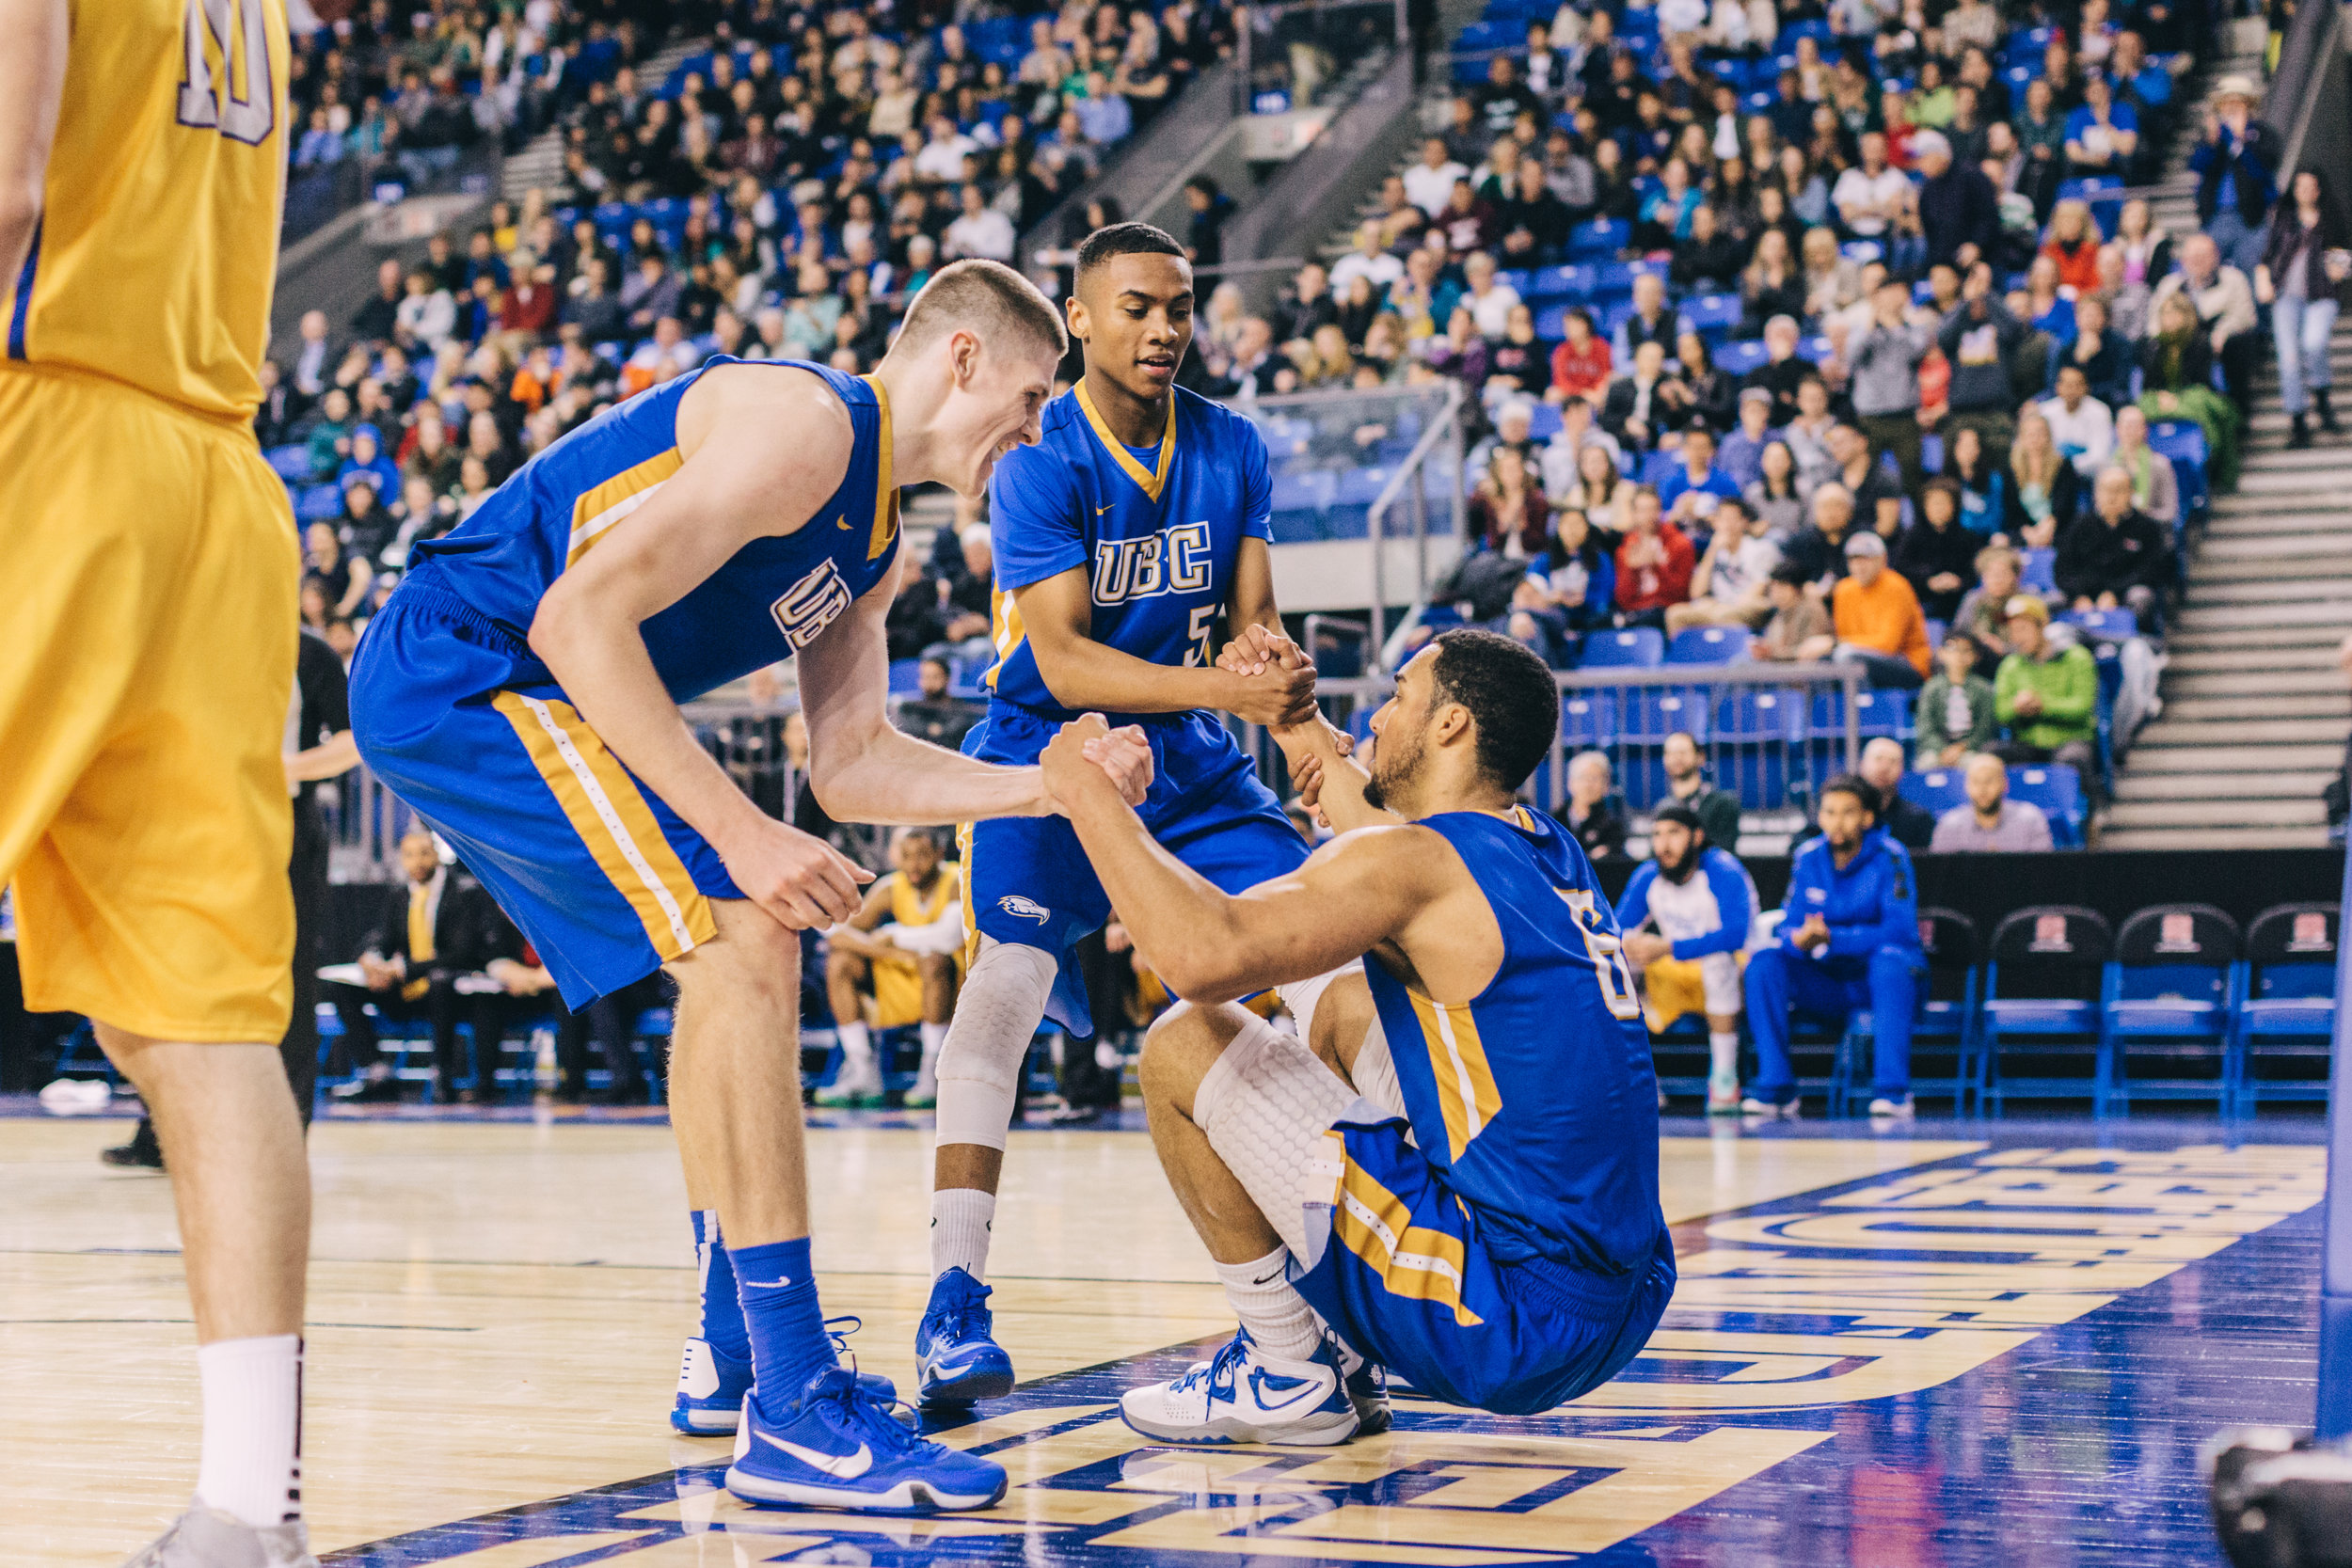 3.17.2016 - CIS Final 8 - University of British Columbia vs Ryerson University - Edited (39 of 128).jpg